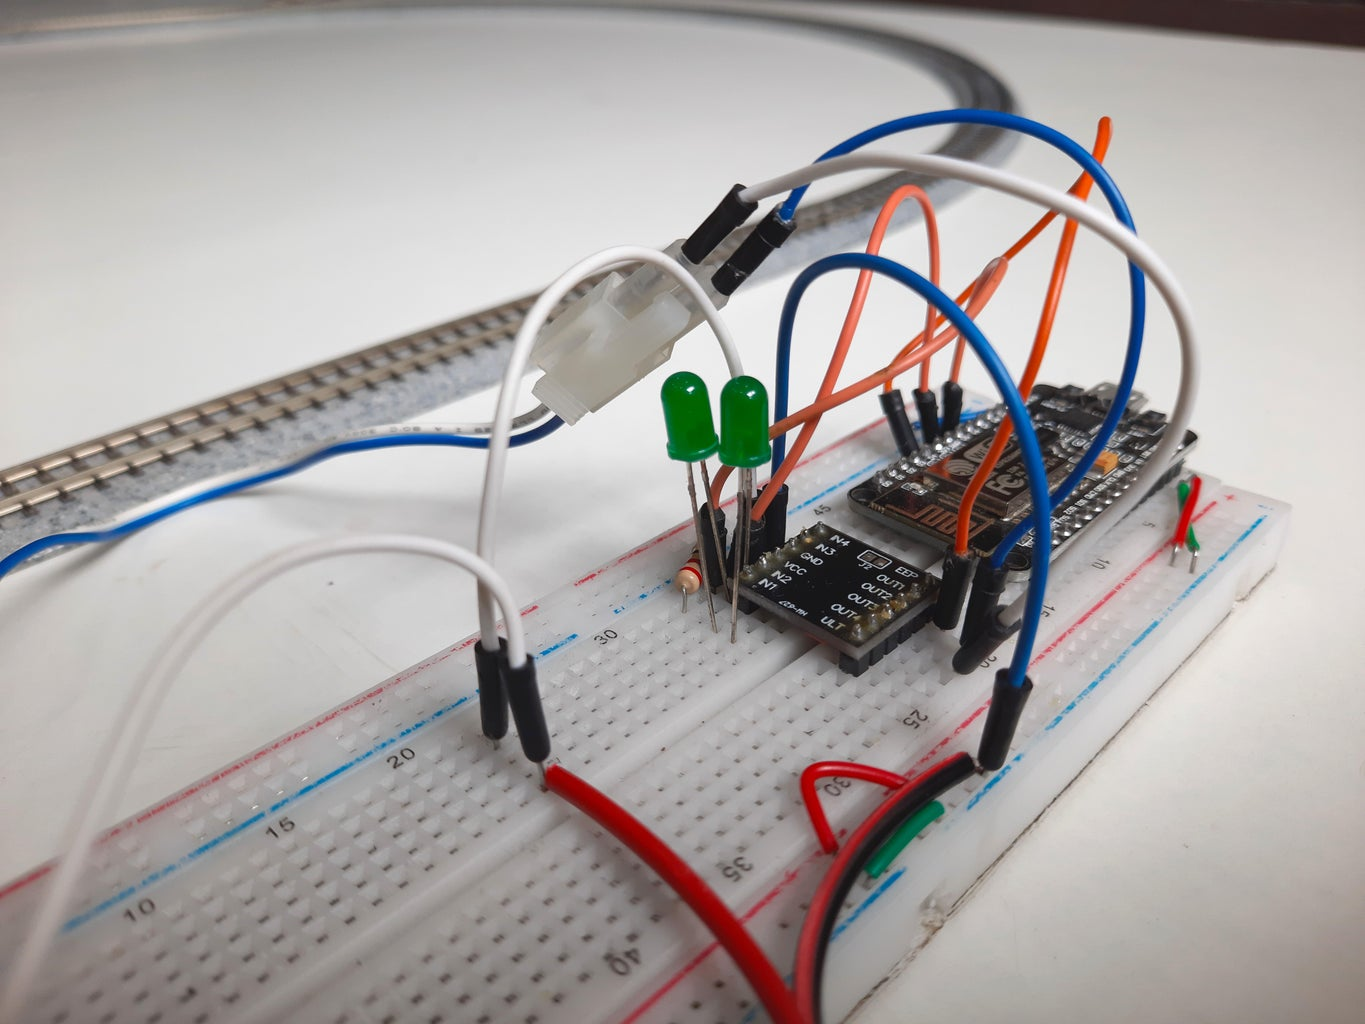 Connect the Motor Driver to the Microcontroller